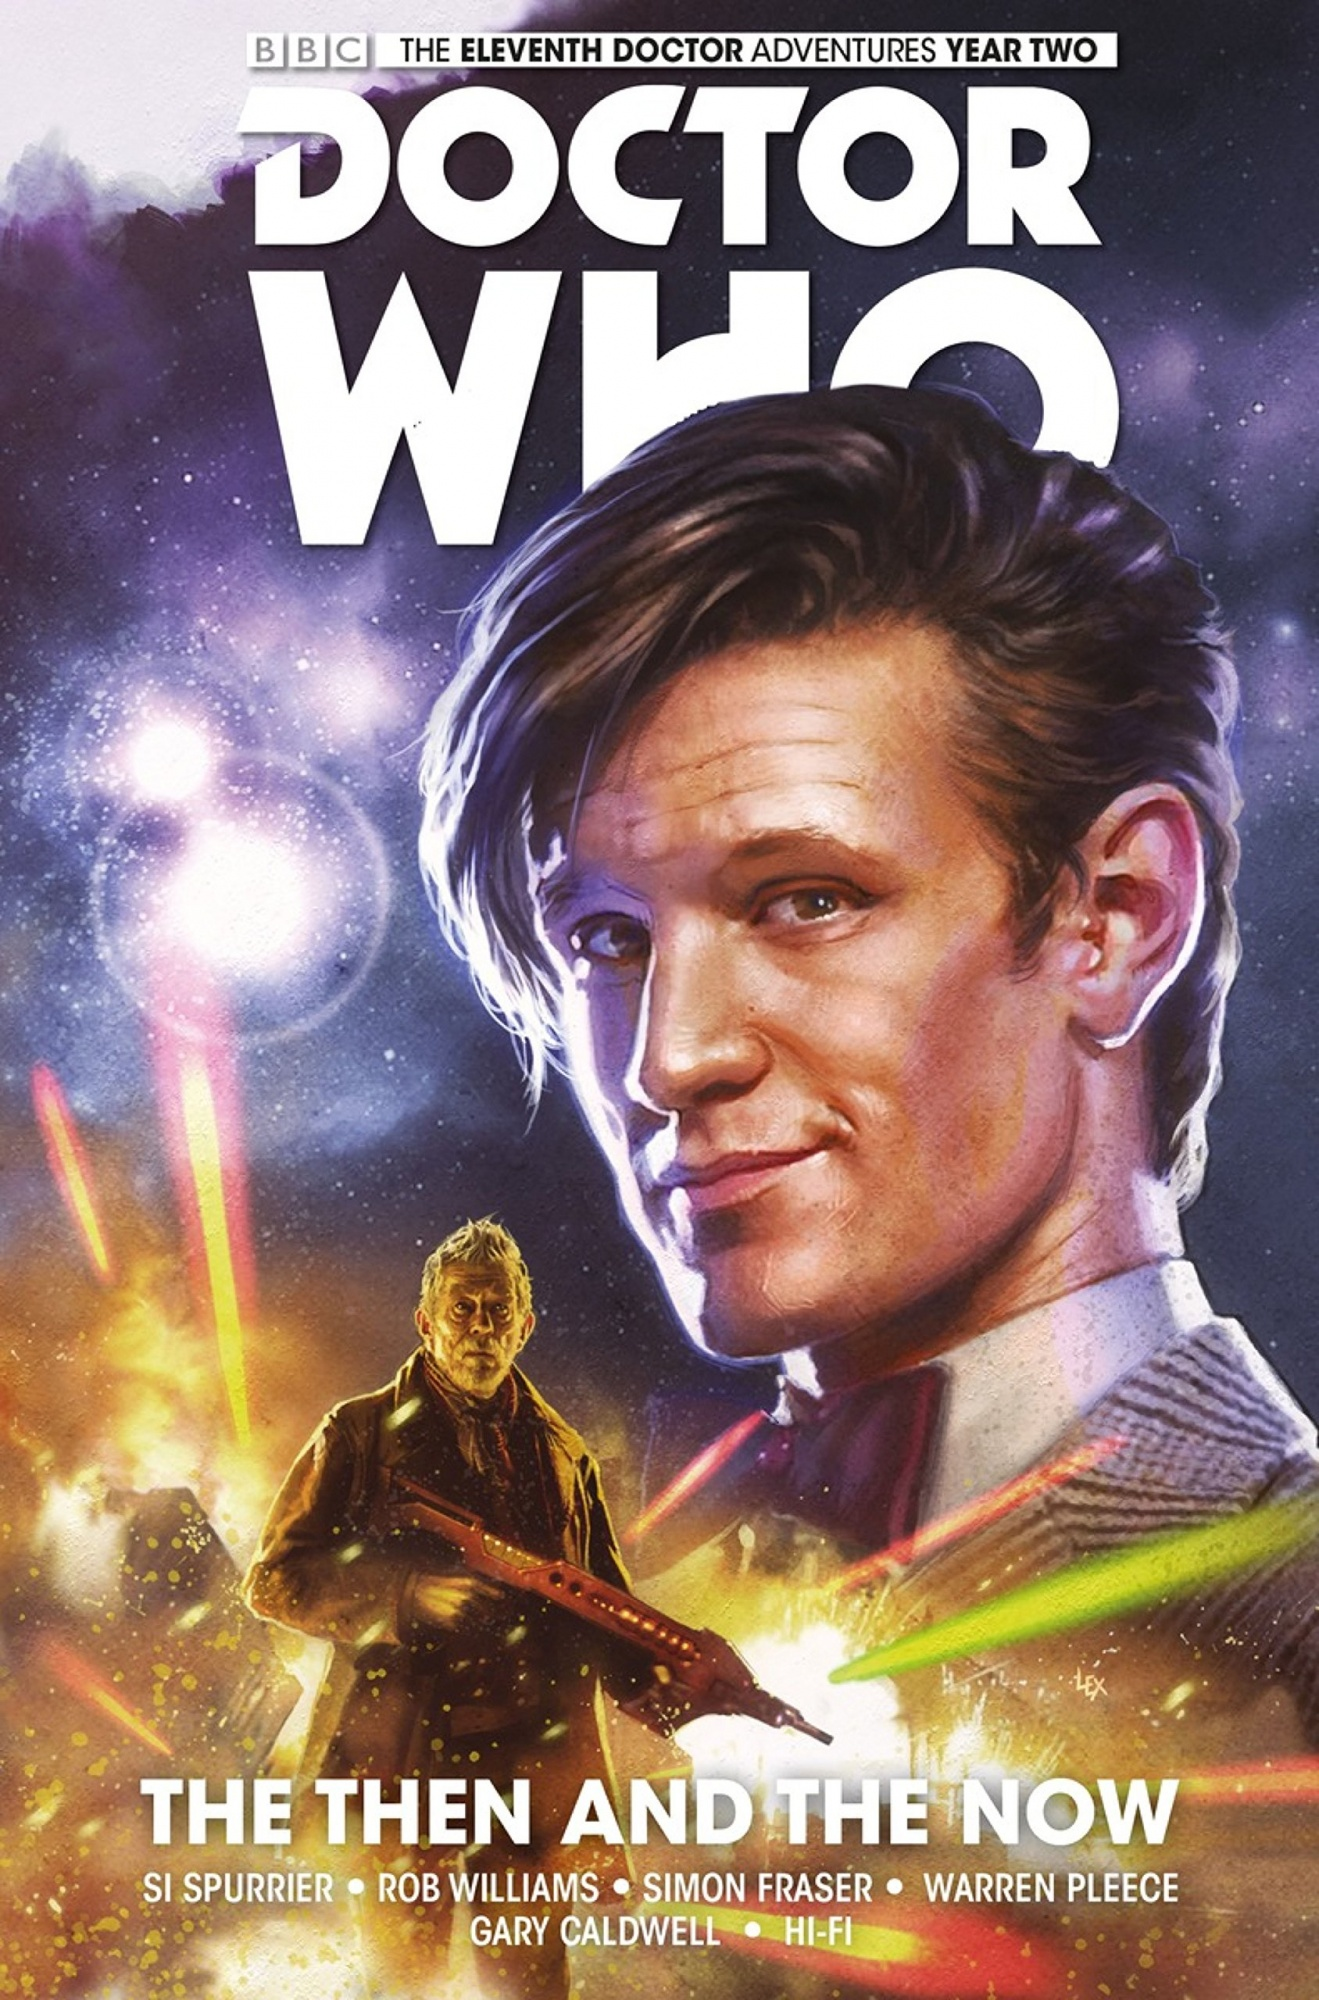 Doctor Who: The Eleventh Doctor: The Then and the Now